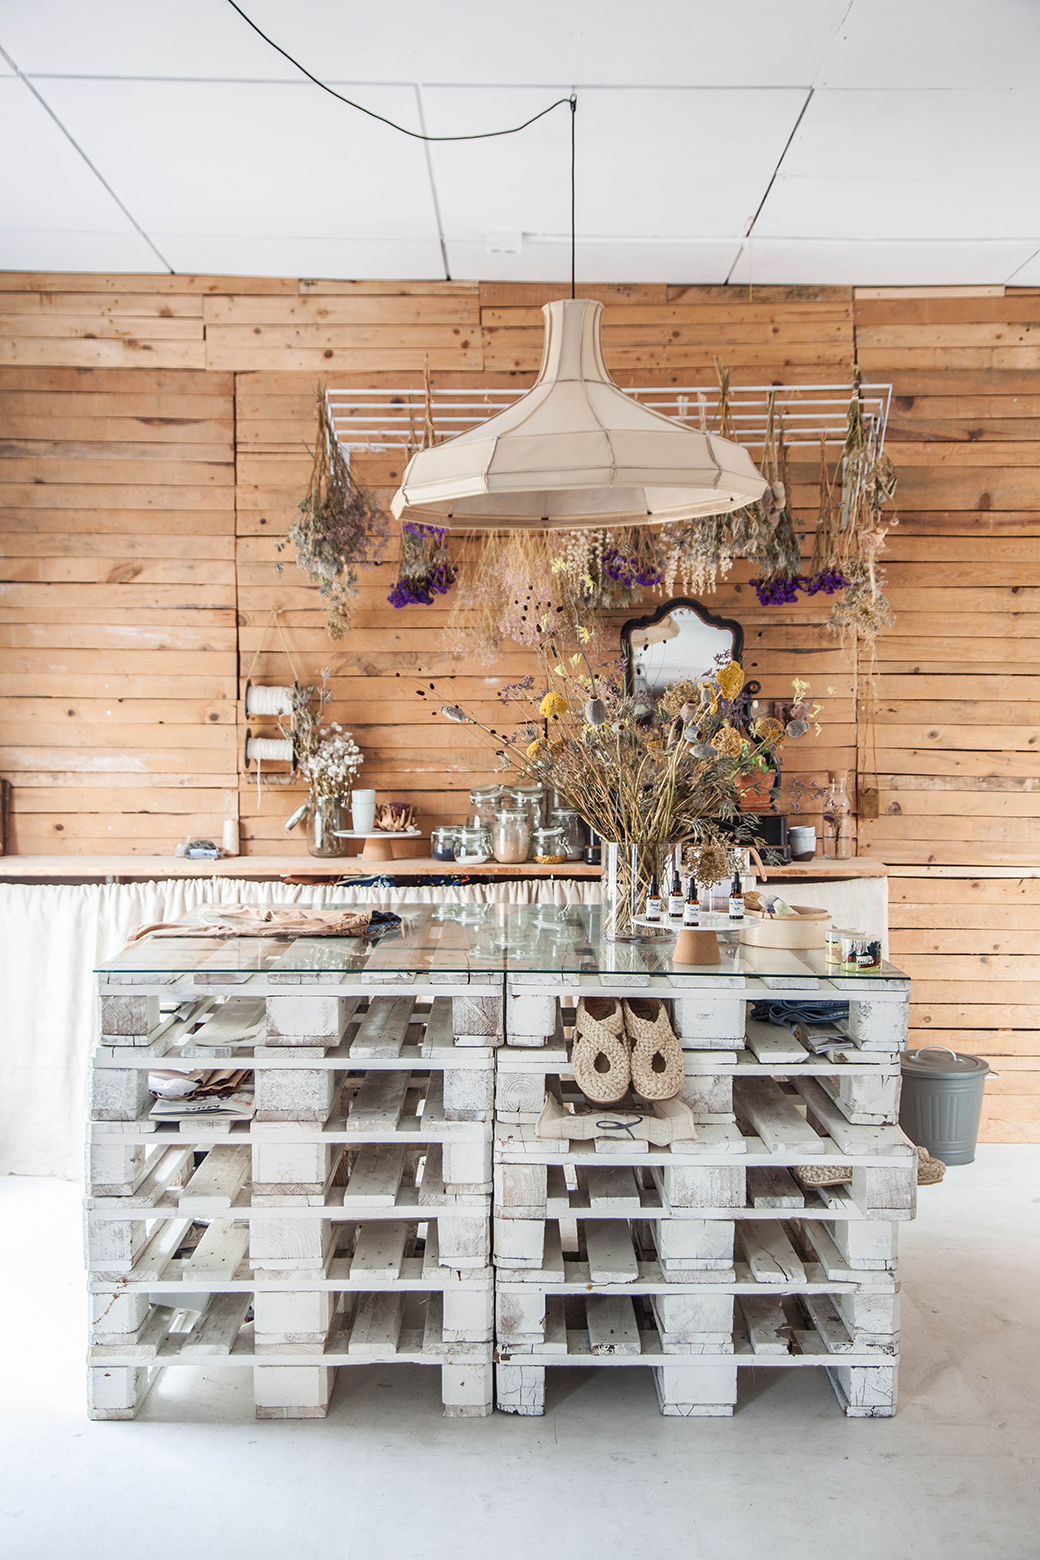 5 Home Decor Ideas To Steal From This Vintage Dutch Shop Decor8